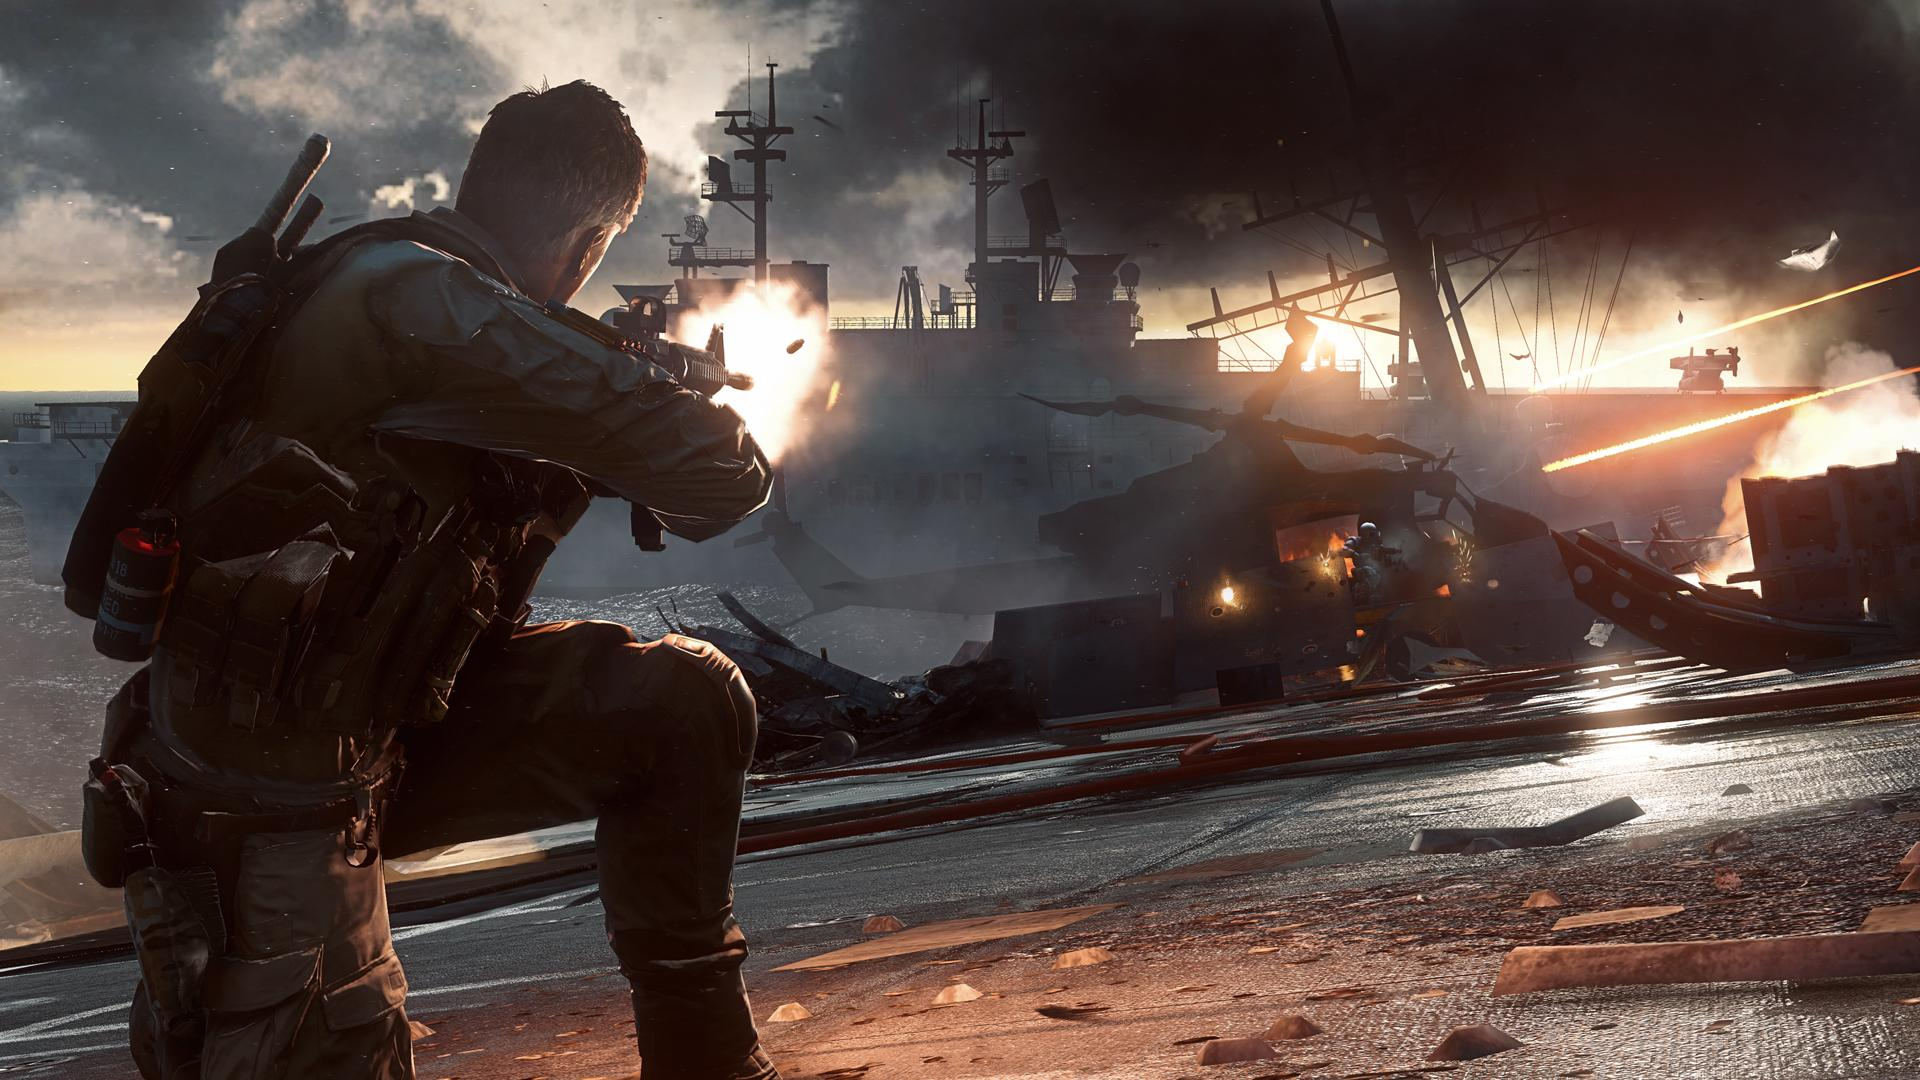 Battlefield 4 patch on PS4 out now, aimed at fixing crashes